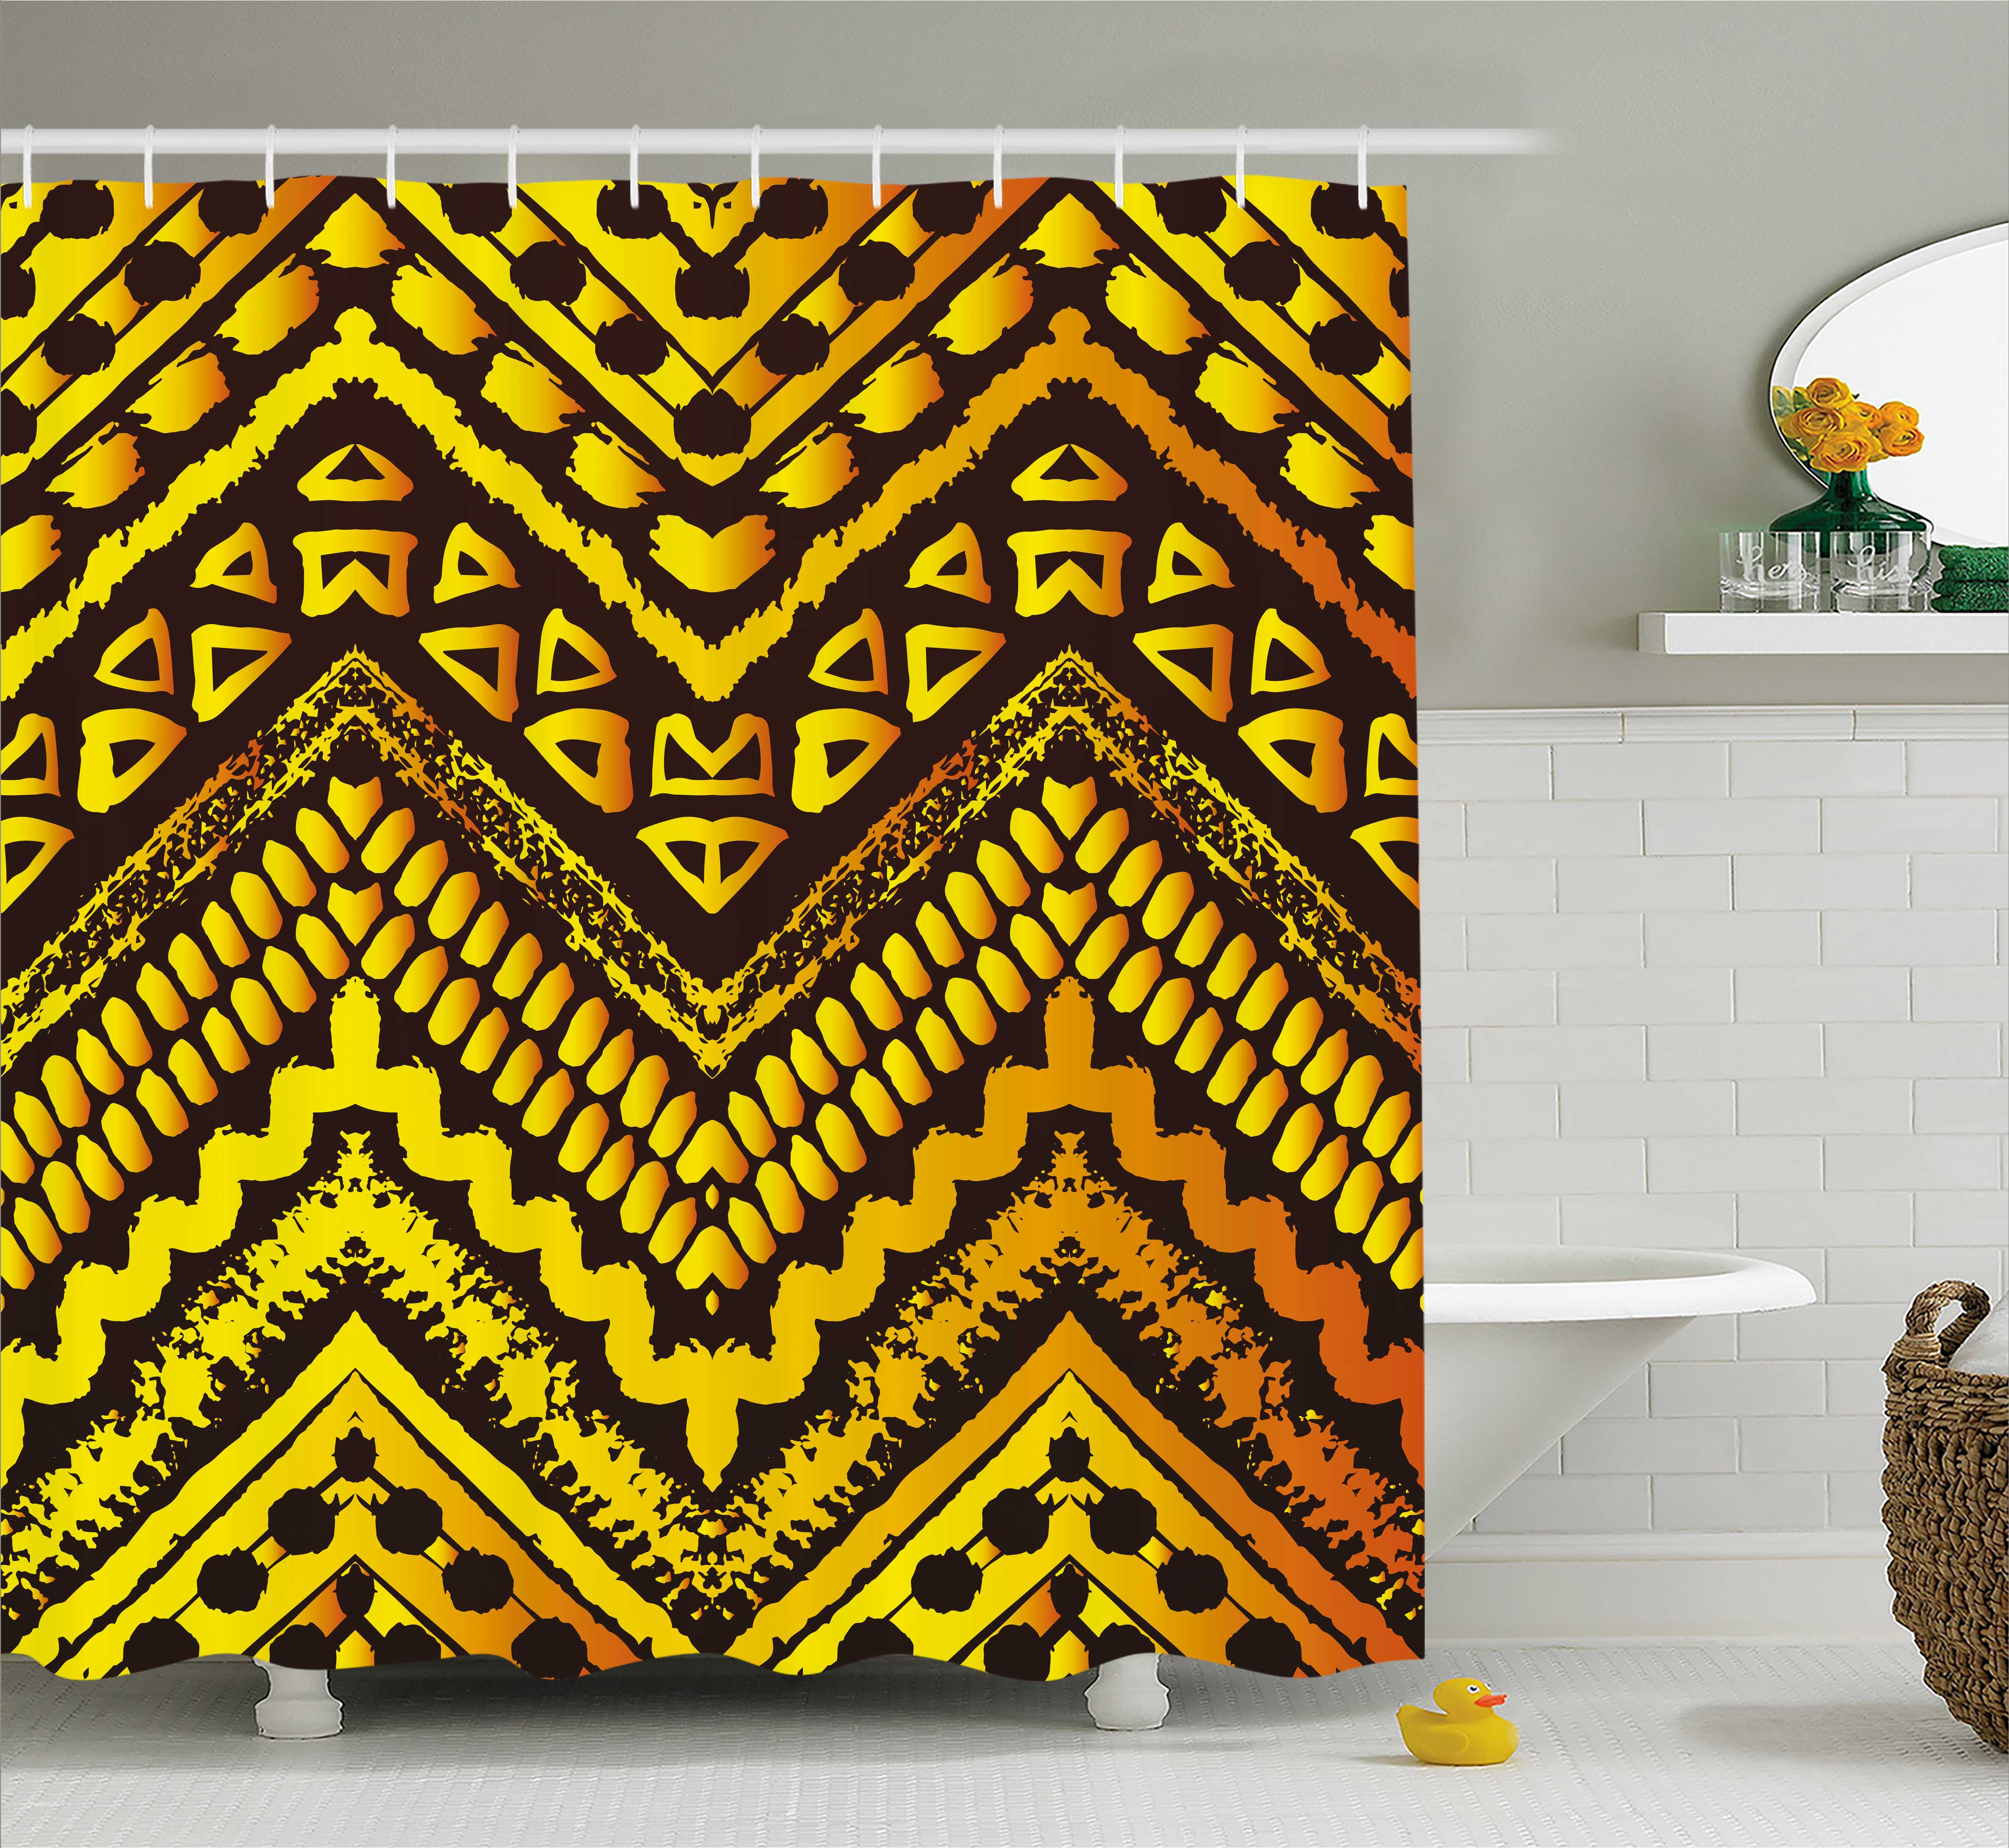 Tribal Shower Curtain, Hand Drawn Painted Ethnic Pattern with Zig Zag and Stripes African Geometric Art, Fabric Bathroom Set with Hooks, 69W X 70L Inches, Yellow Black, by Ambesonne